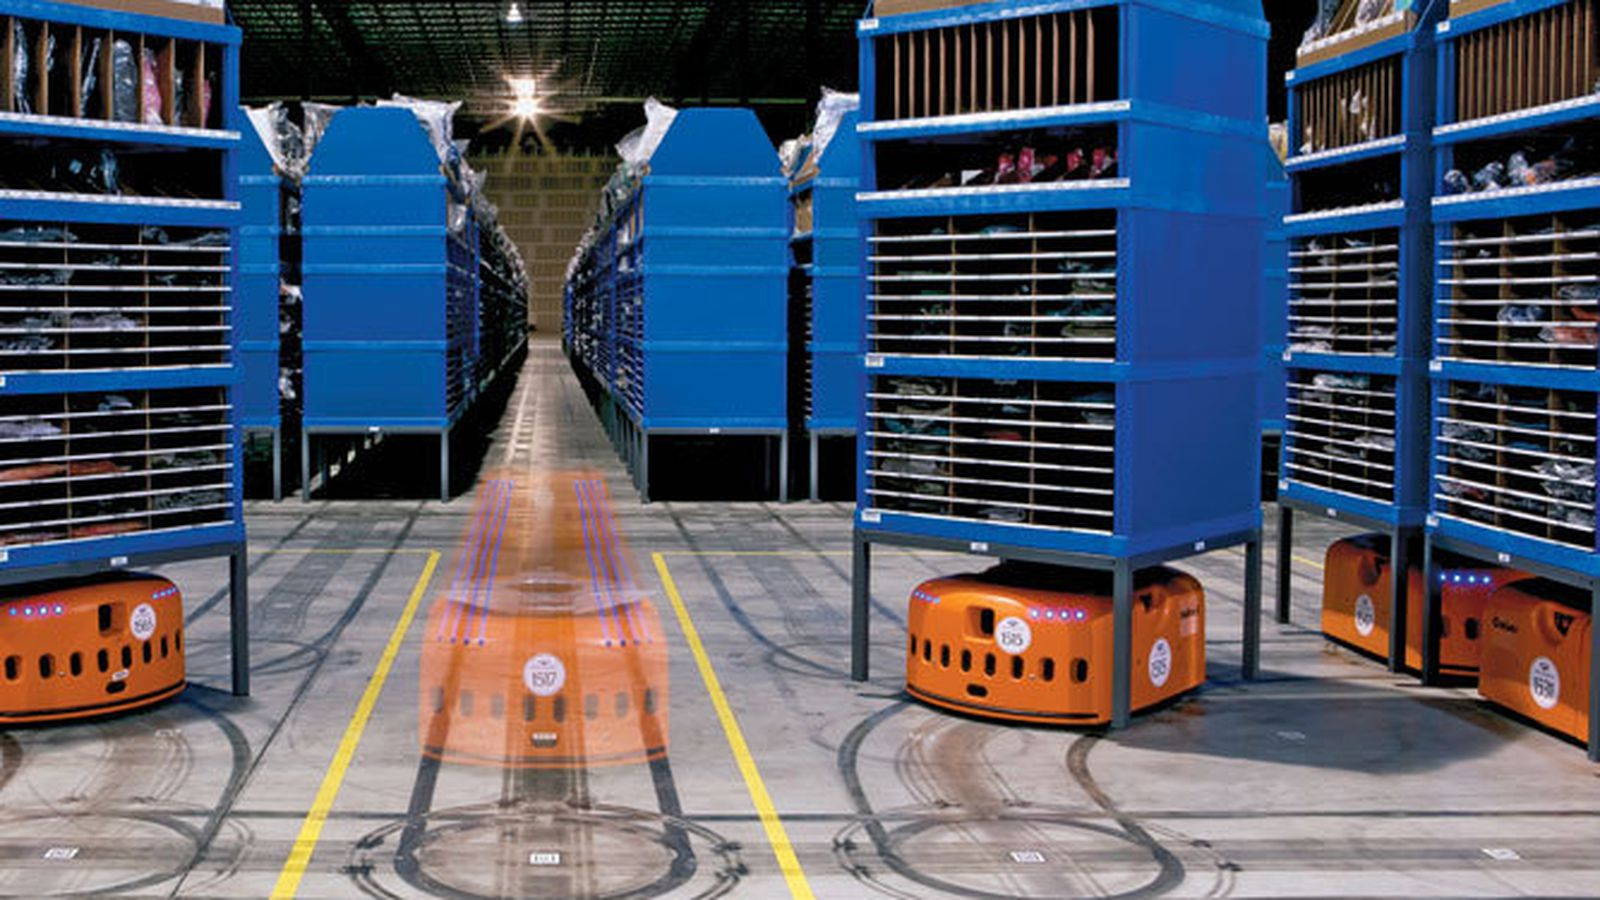 10 000 Robots Coming To Amazon Warehouses The Verge